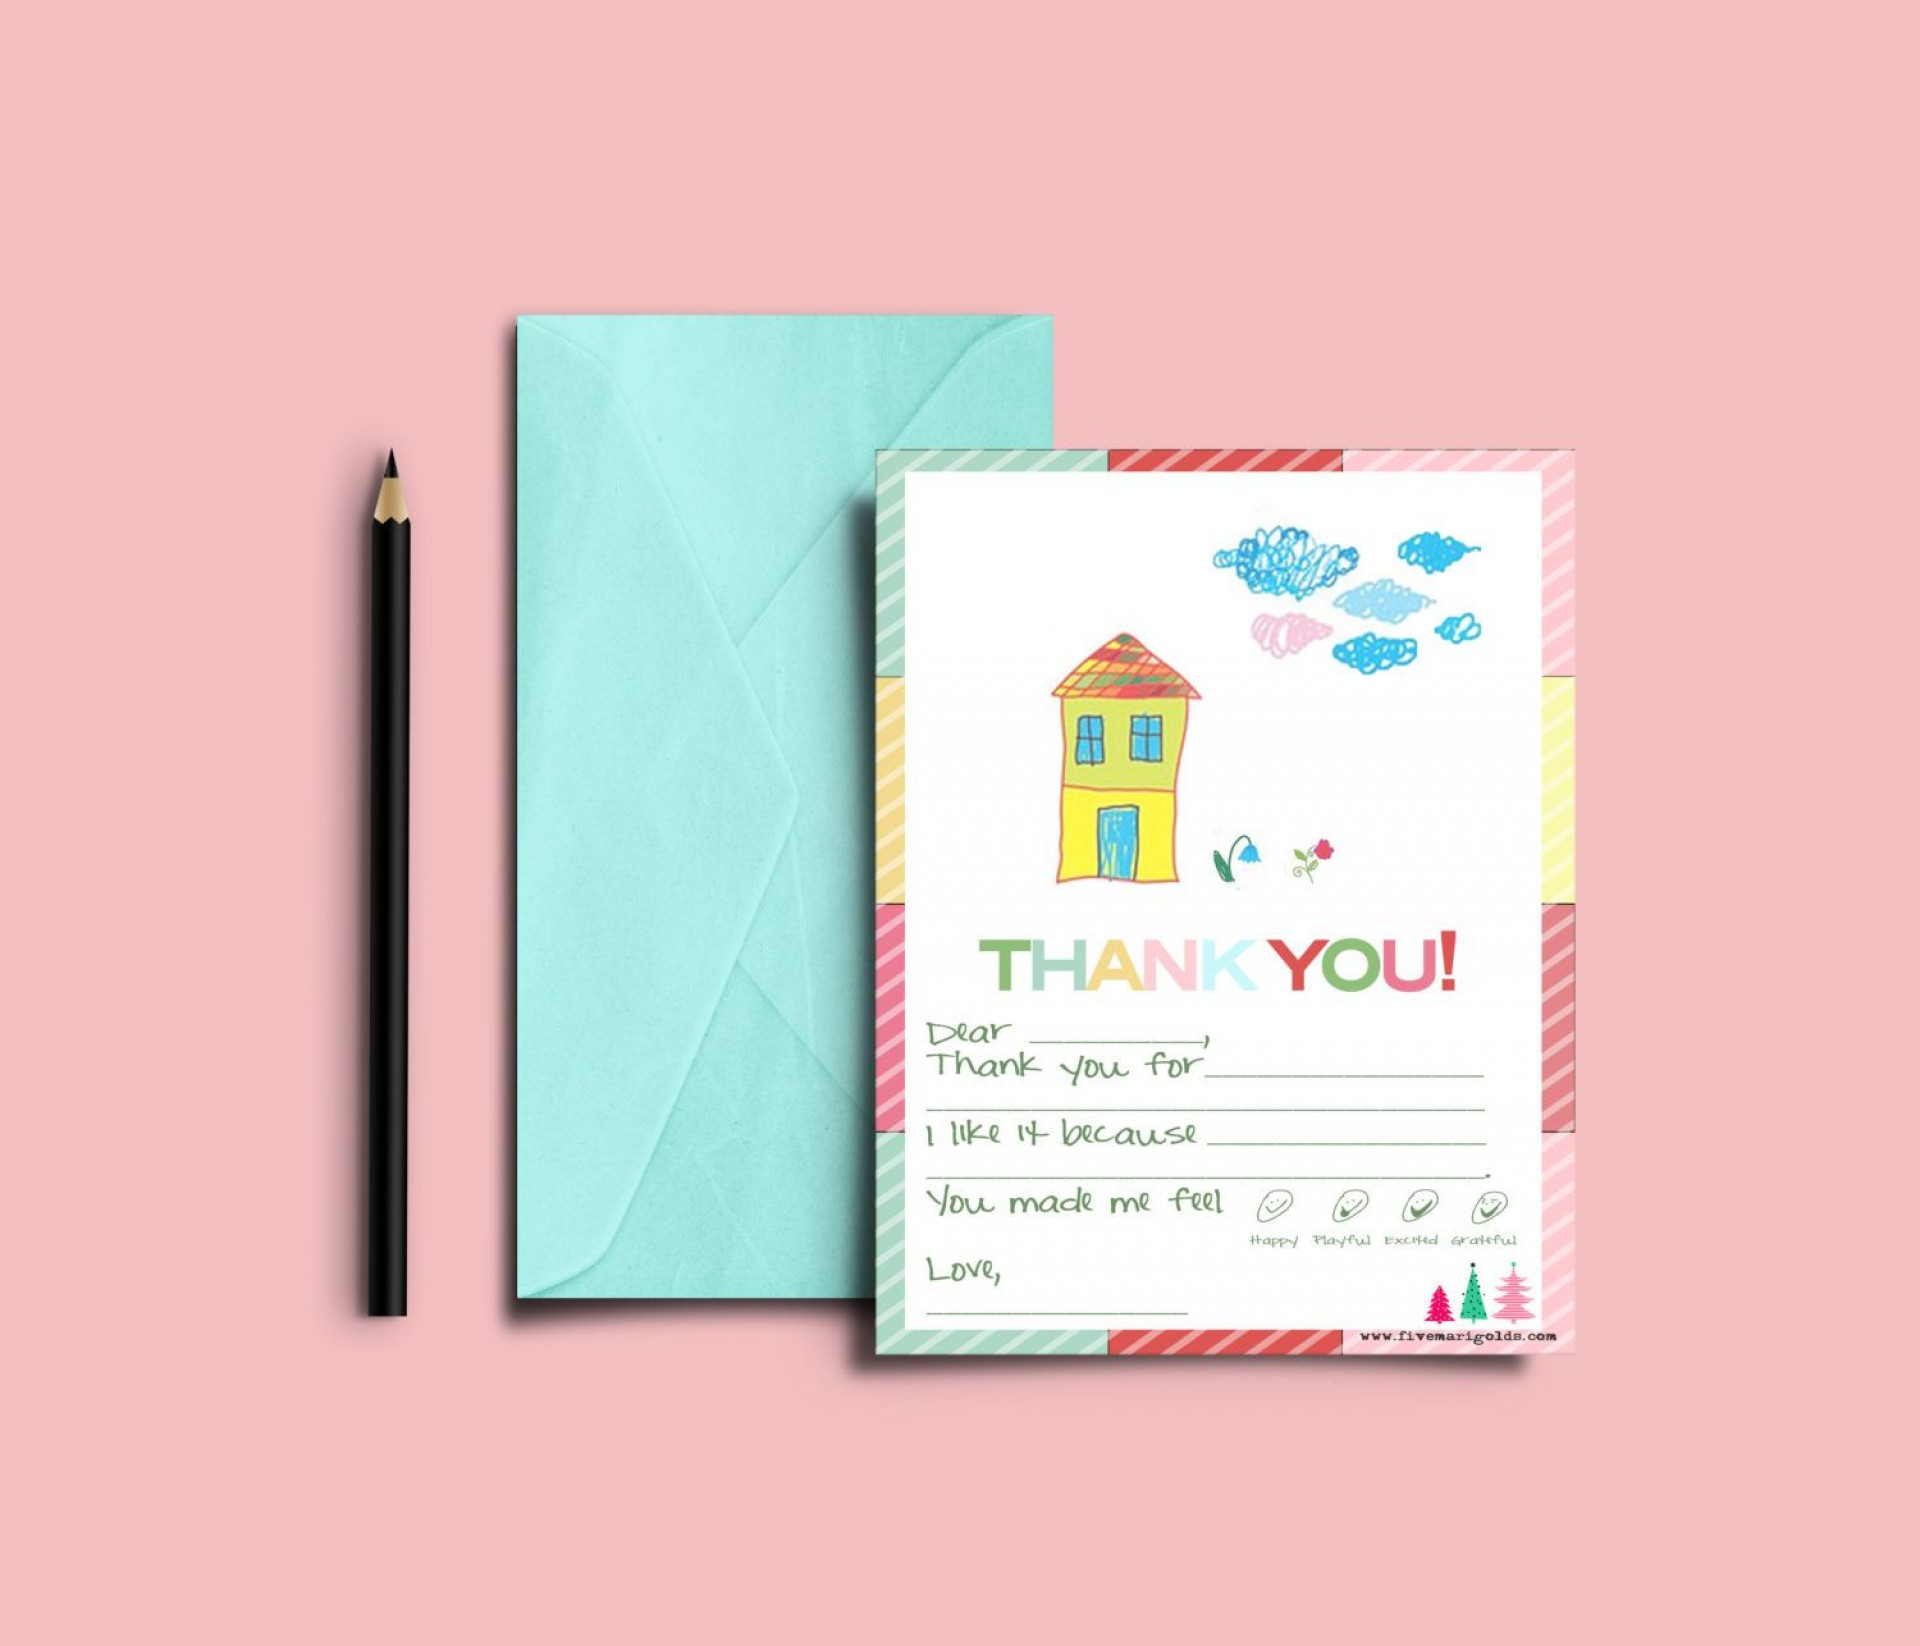 003 Rare Thank You Note Template For Kid Example  Kids Child Pdf Letter1920